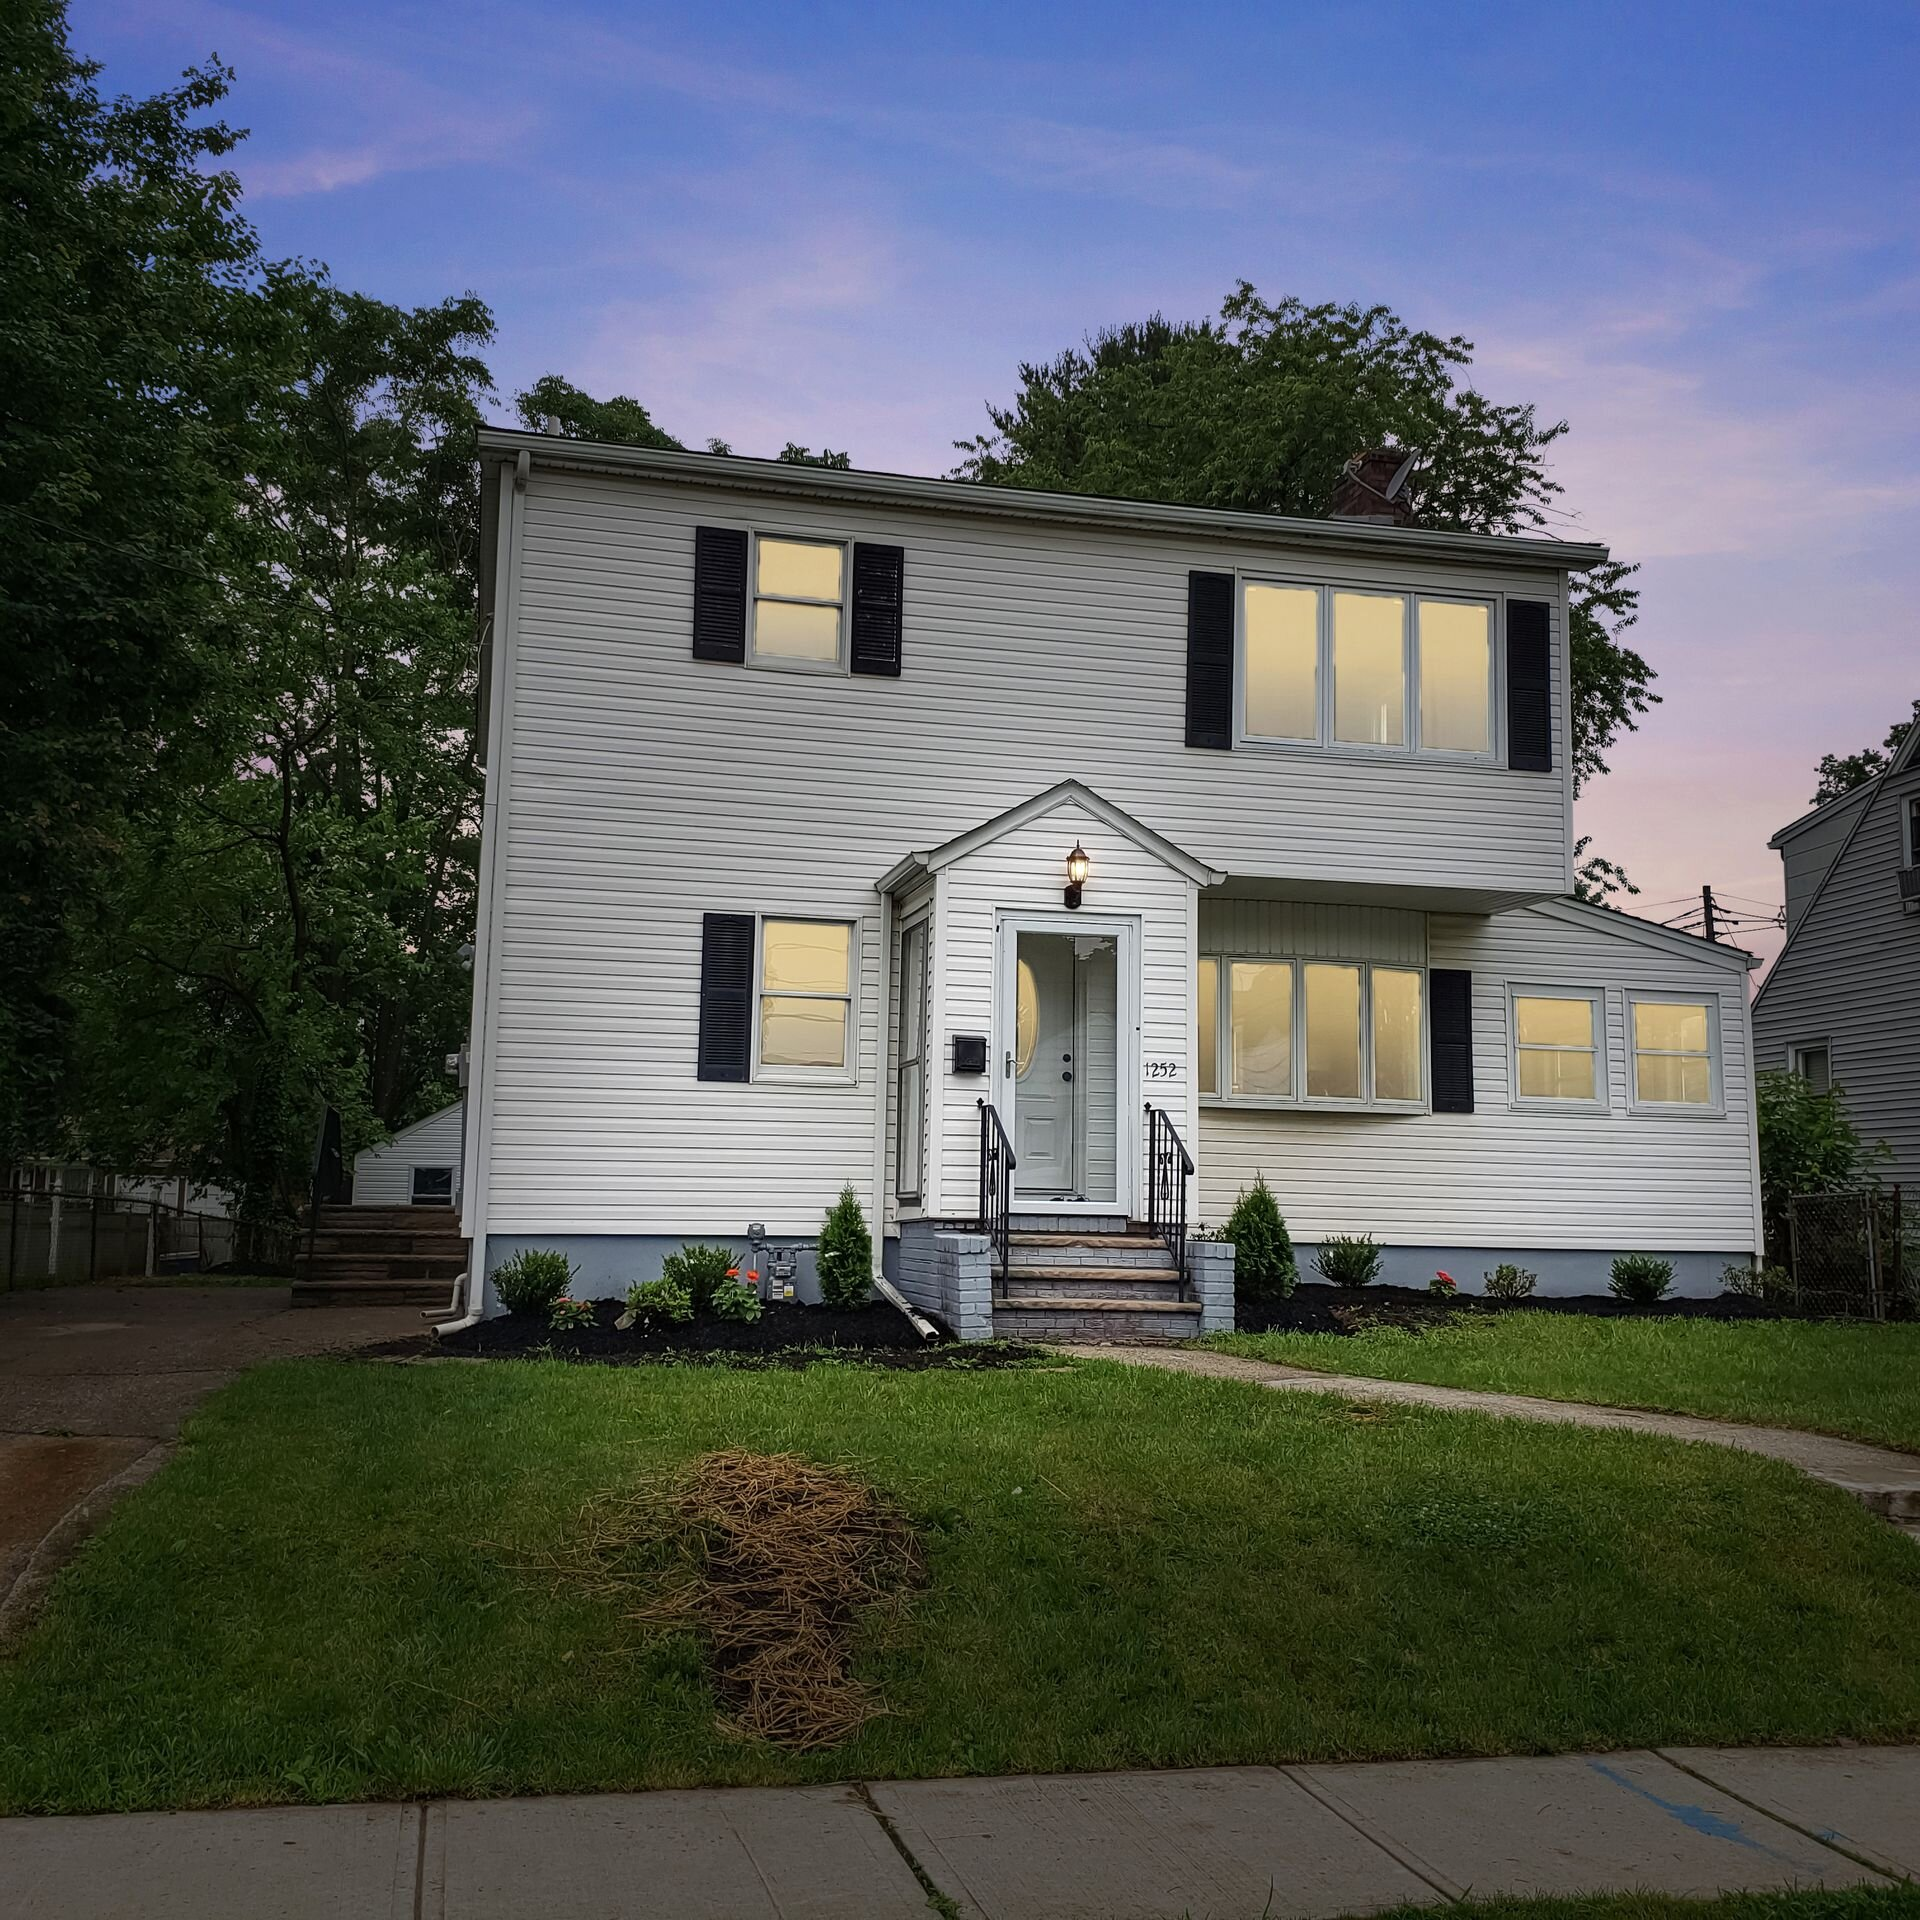 1252 Crescent Ave Roselle,NJ - List Price: $359,900Sold Price: $375,000#justlisted #justsold #hgtv